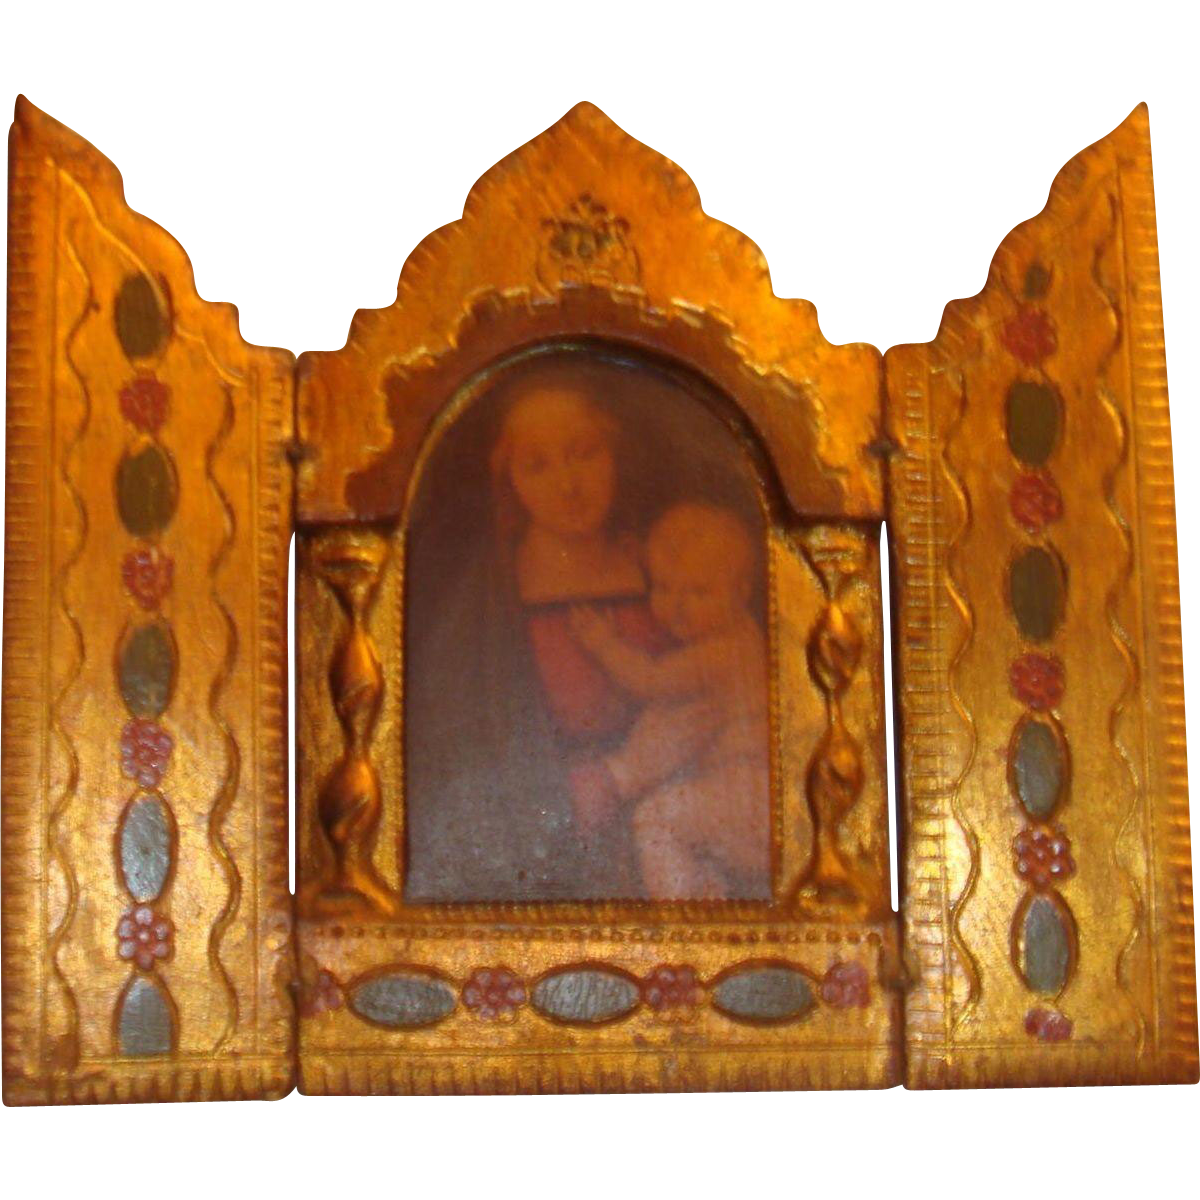 SALE Madonna and Child Small Triptych Made in Italy Gold Gesso Warm Colors Florentine Dollhouse Size